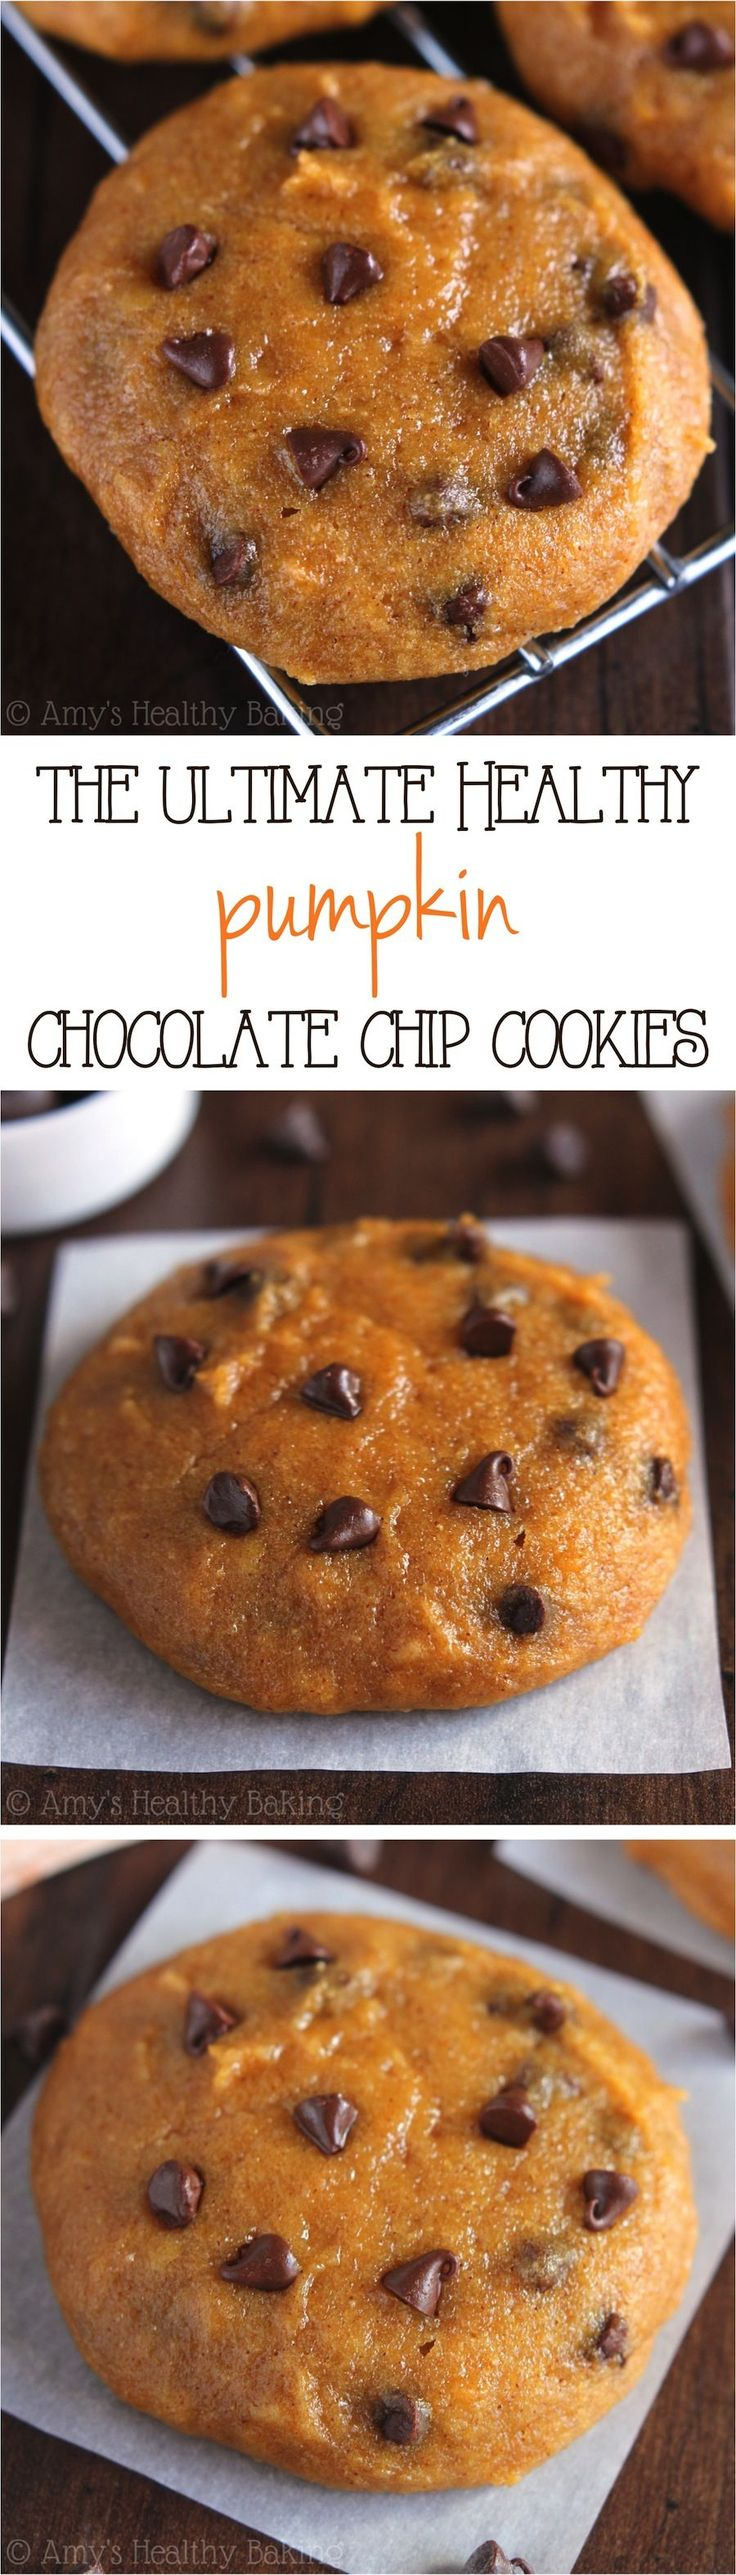 Best 10+ Pumpkin chocolate chips ideas on Pinterest | Pumpkin ...